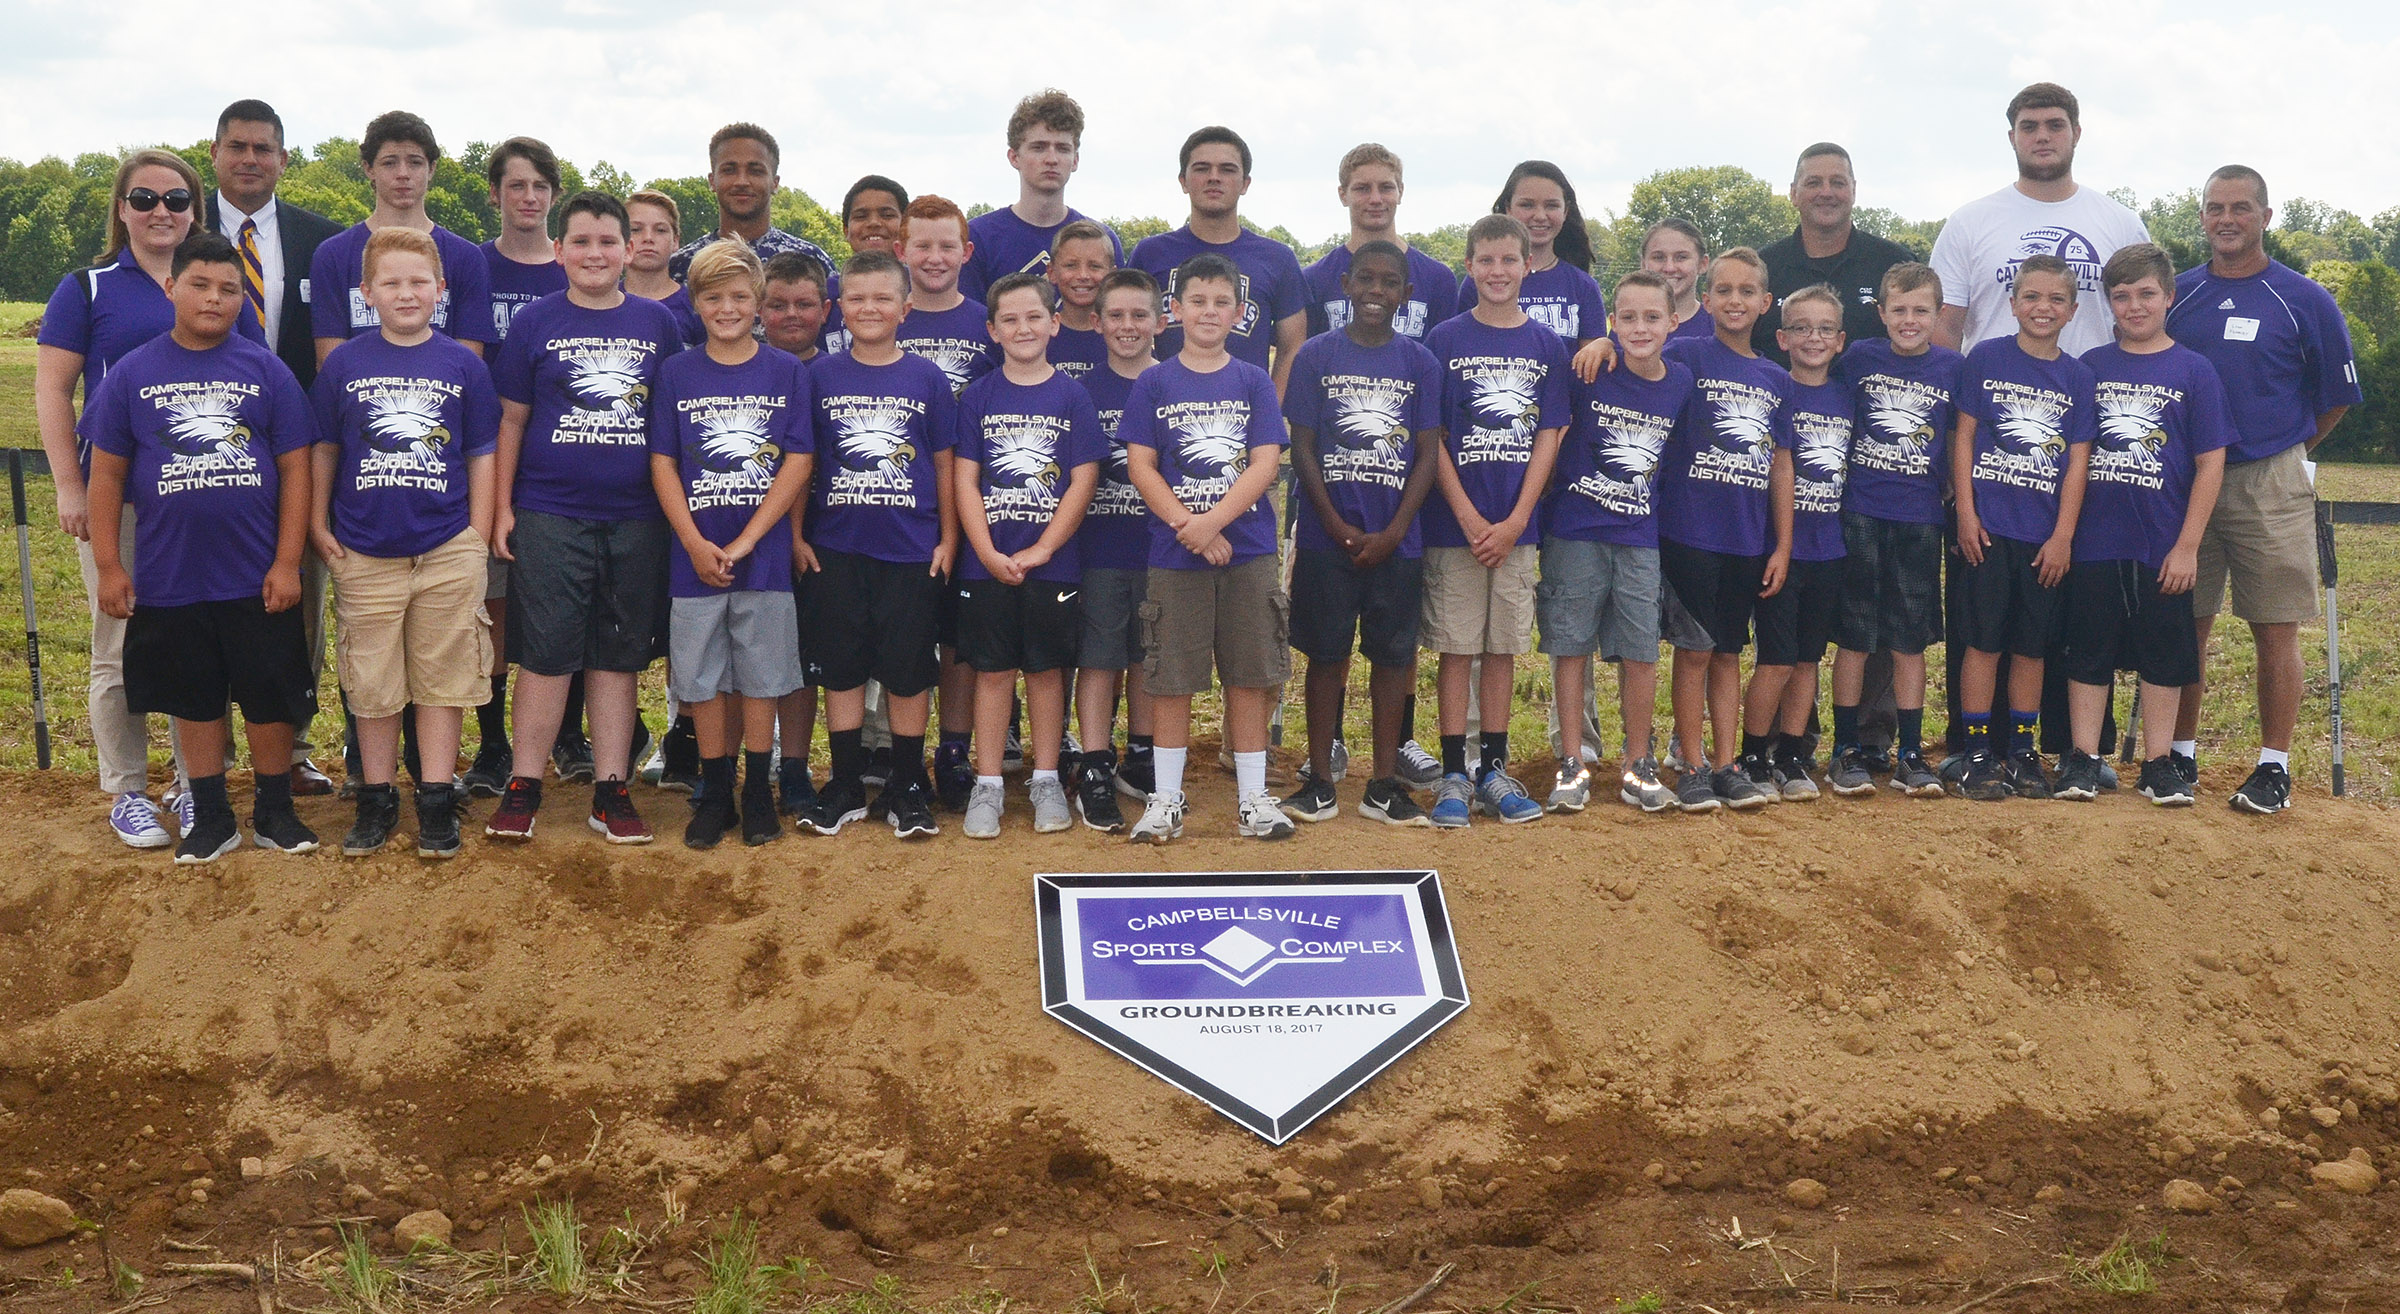 Campbellsville Independent Schools' students were a part of history on Friday, Aug. 18. Thirty students were on hand to participate in the groundbreaking of the Campbellsville Sports Complex. From left, front, are fourth-graders Brayden Paiz, Isaiah Jeffries and Ethan Garrison, third-graders Emerson Gowin, Hayden Maupin, Cayton Lawhorn, Reece Swafford and Luke Adkins, fourth-grader Cameron Taylor, third-graders Lanigan Price, Damien Clark and Jaron Johnson, fifth-grader Rowan Petett, fourth-graders Caysen Tungate, Bradley Paris, Cameron Estes, Keaton Hord and Carson Mills and fifth-grader Skylar Wilhoite. Back, CMS teacher Katie Campbell, CIS Superintendent Kirby Smith, eighth-grader C.J. Adams, seventh-grader Seth Hash, eighth-grader Tuff Harper, senior Ethan Lay, sixth-grader Tashuan Hart, juniors Jackson Hinton and Ryan Kearney, eighth-graders Damon Johnson and Karley Morris, seventh-grader Leigh Hicks, CHS Assistant Principal Mark Kearney, junior Lane Bottoms and CES teacher Lynn Kearney.